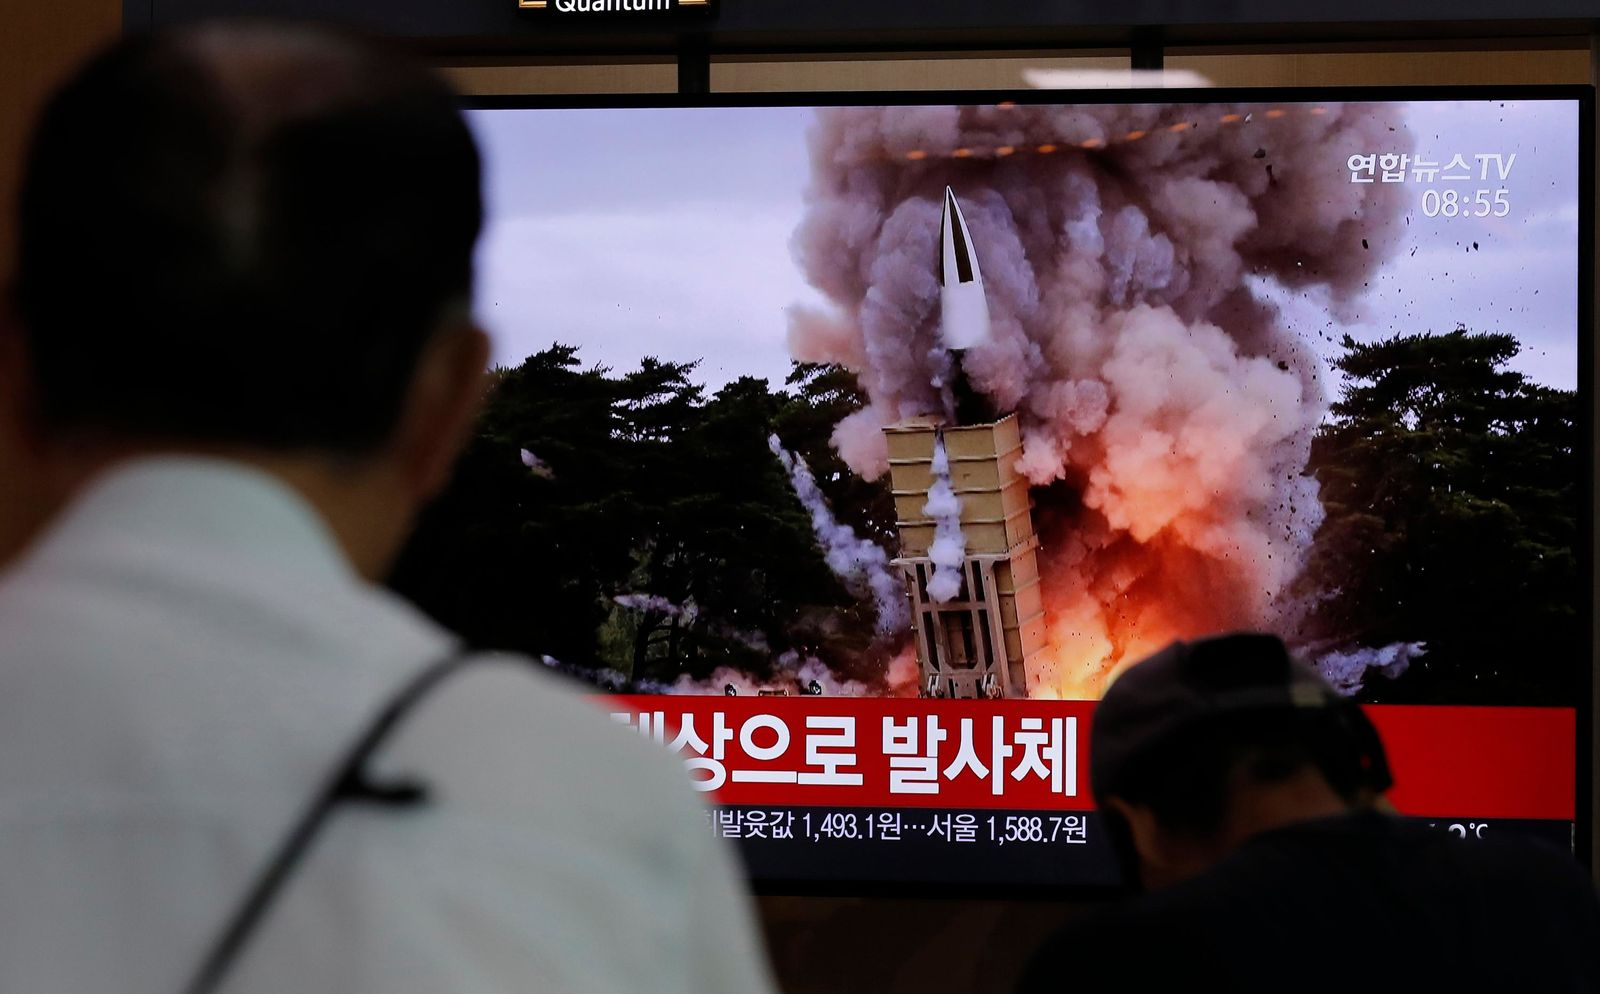 "People watch a TV news program reporting North Korea's firing projectiles with a file image at the Seoul Railway Station in Seoul, South Korea, Saturday, Aug. 24, 2019. North Korea fired two suspected short-range ballistic missiles off its east coast on Saturday in the seventh consecutive week of weapons tests, South Korea's military said, a day after it threatened to remain America's biggest threat in protest of U.S.-led sanctions on the country. The part of Korean letters read: ""Projectiles."" (AP Photo/Lee Jin-man)"